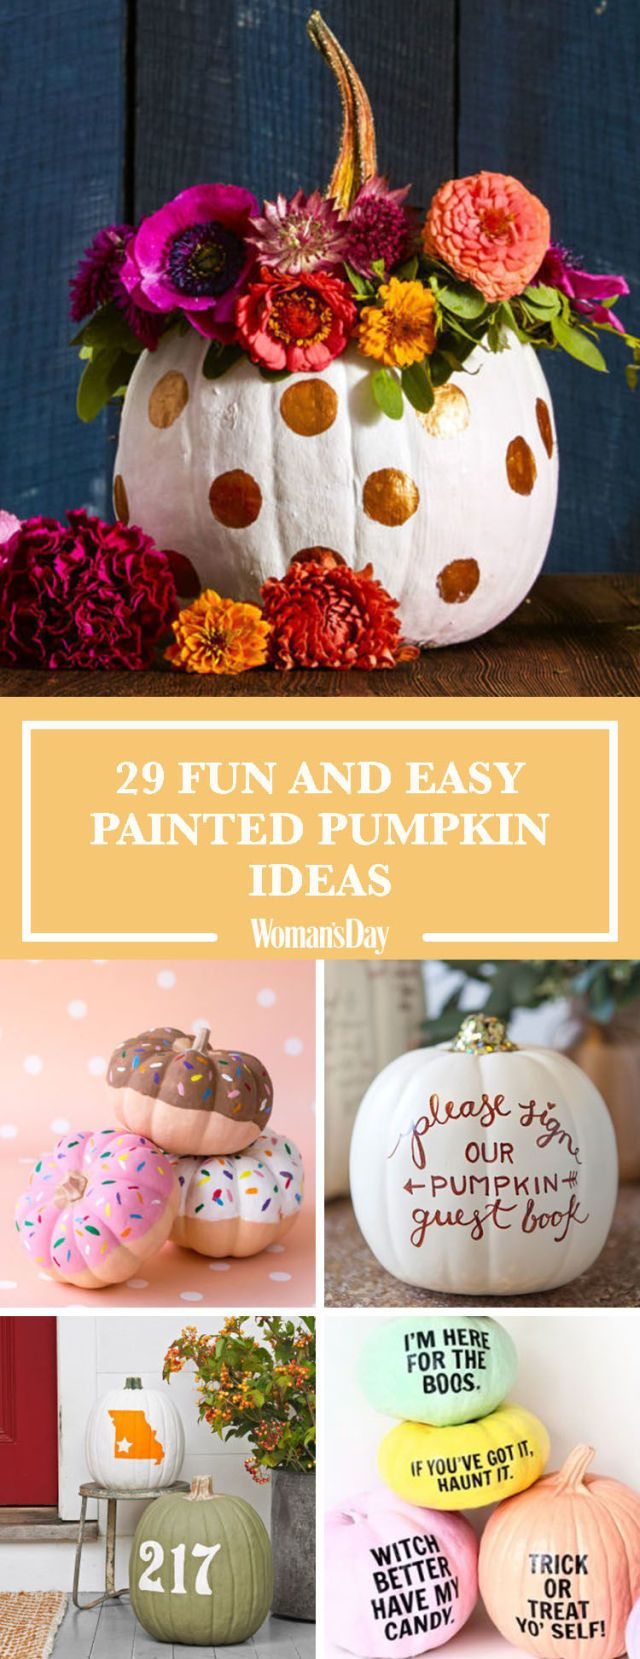 Save these painted pumpkin ideas for later by pinning this image and follow Woman's Day on Pinterest for more.